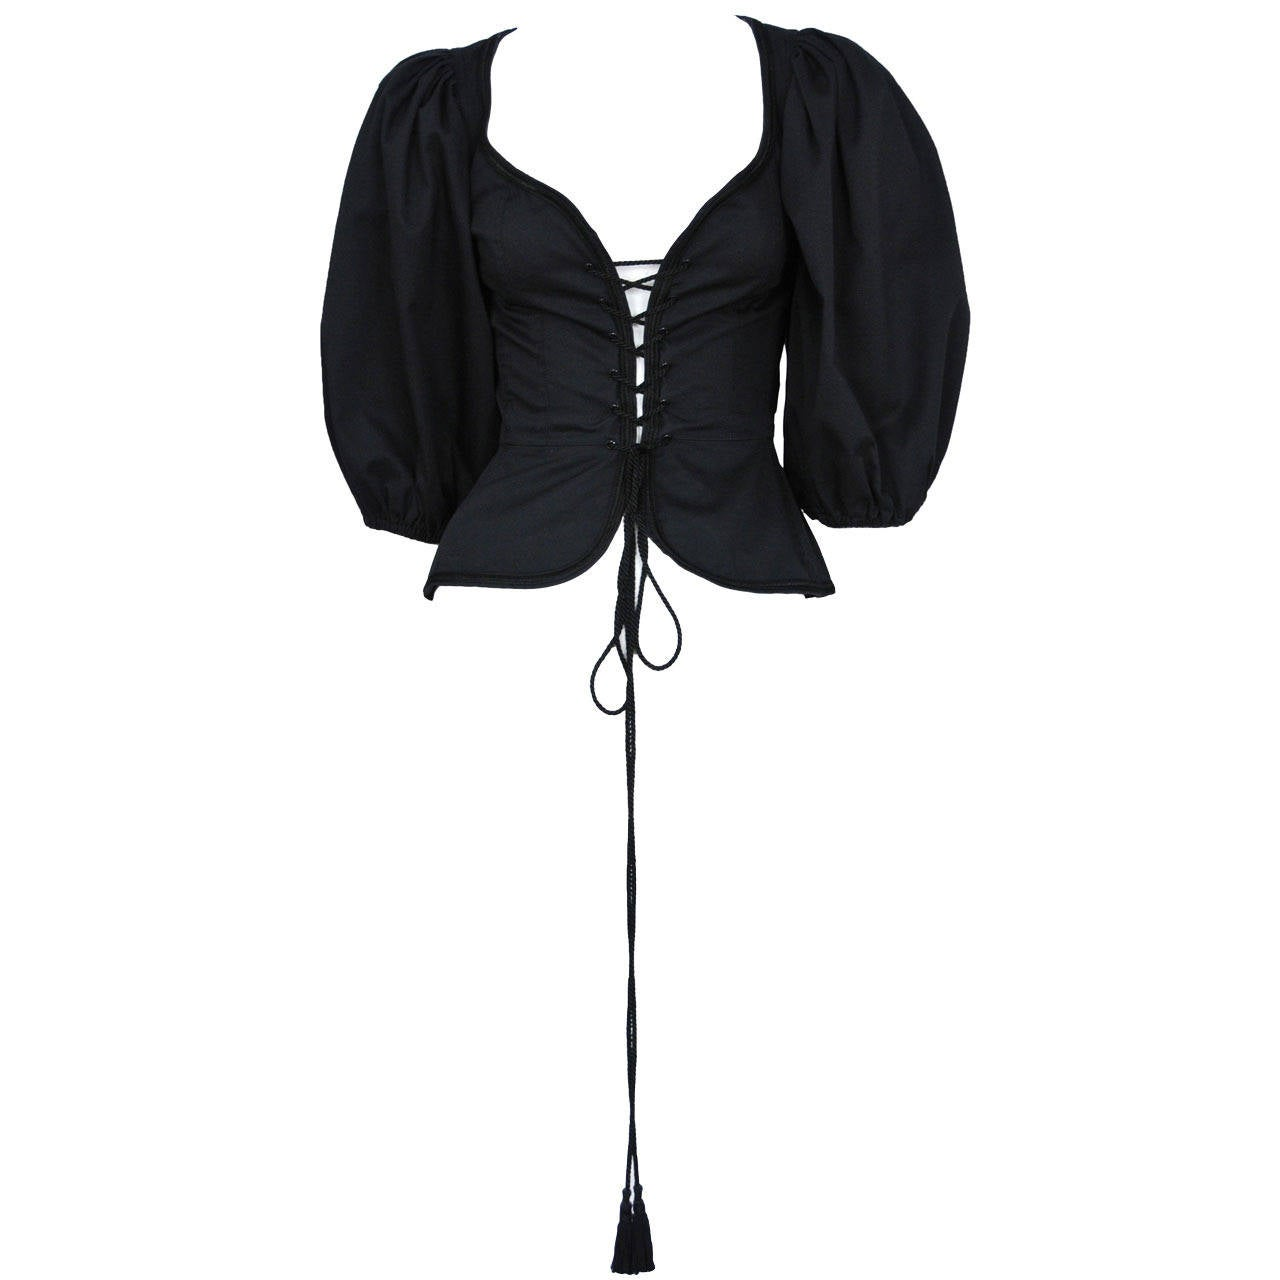 Vintage Yves Saint Laurent iconic black safari top with traditional peasant sleeves and a lace up front and peplum finished off with tassels on either end of the cord.